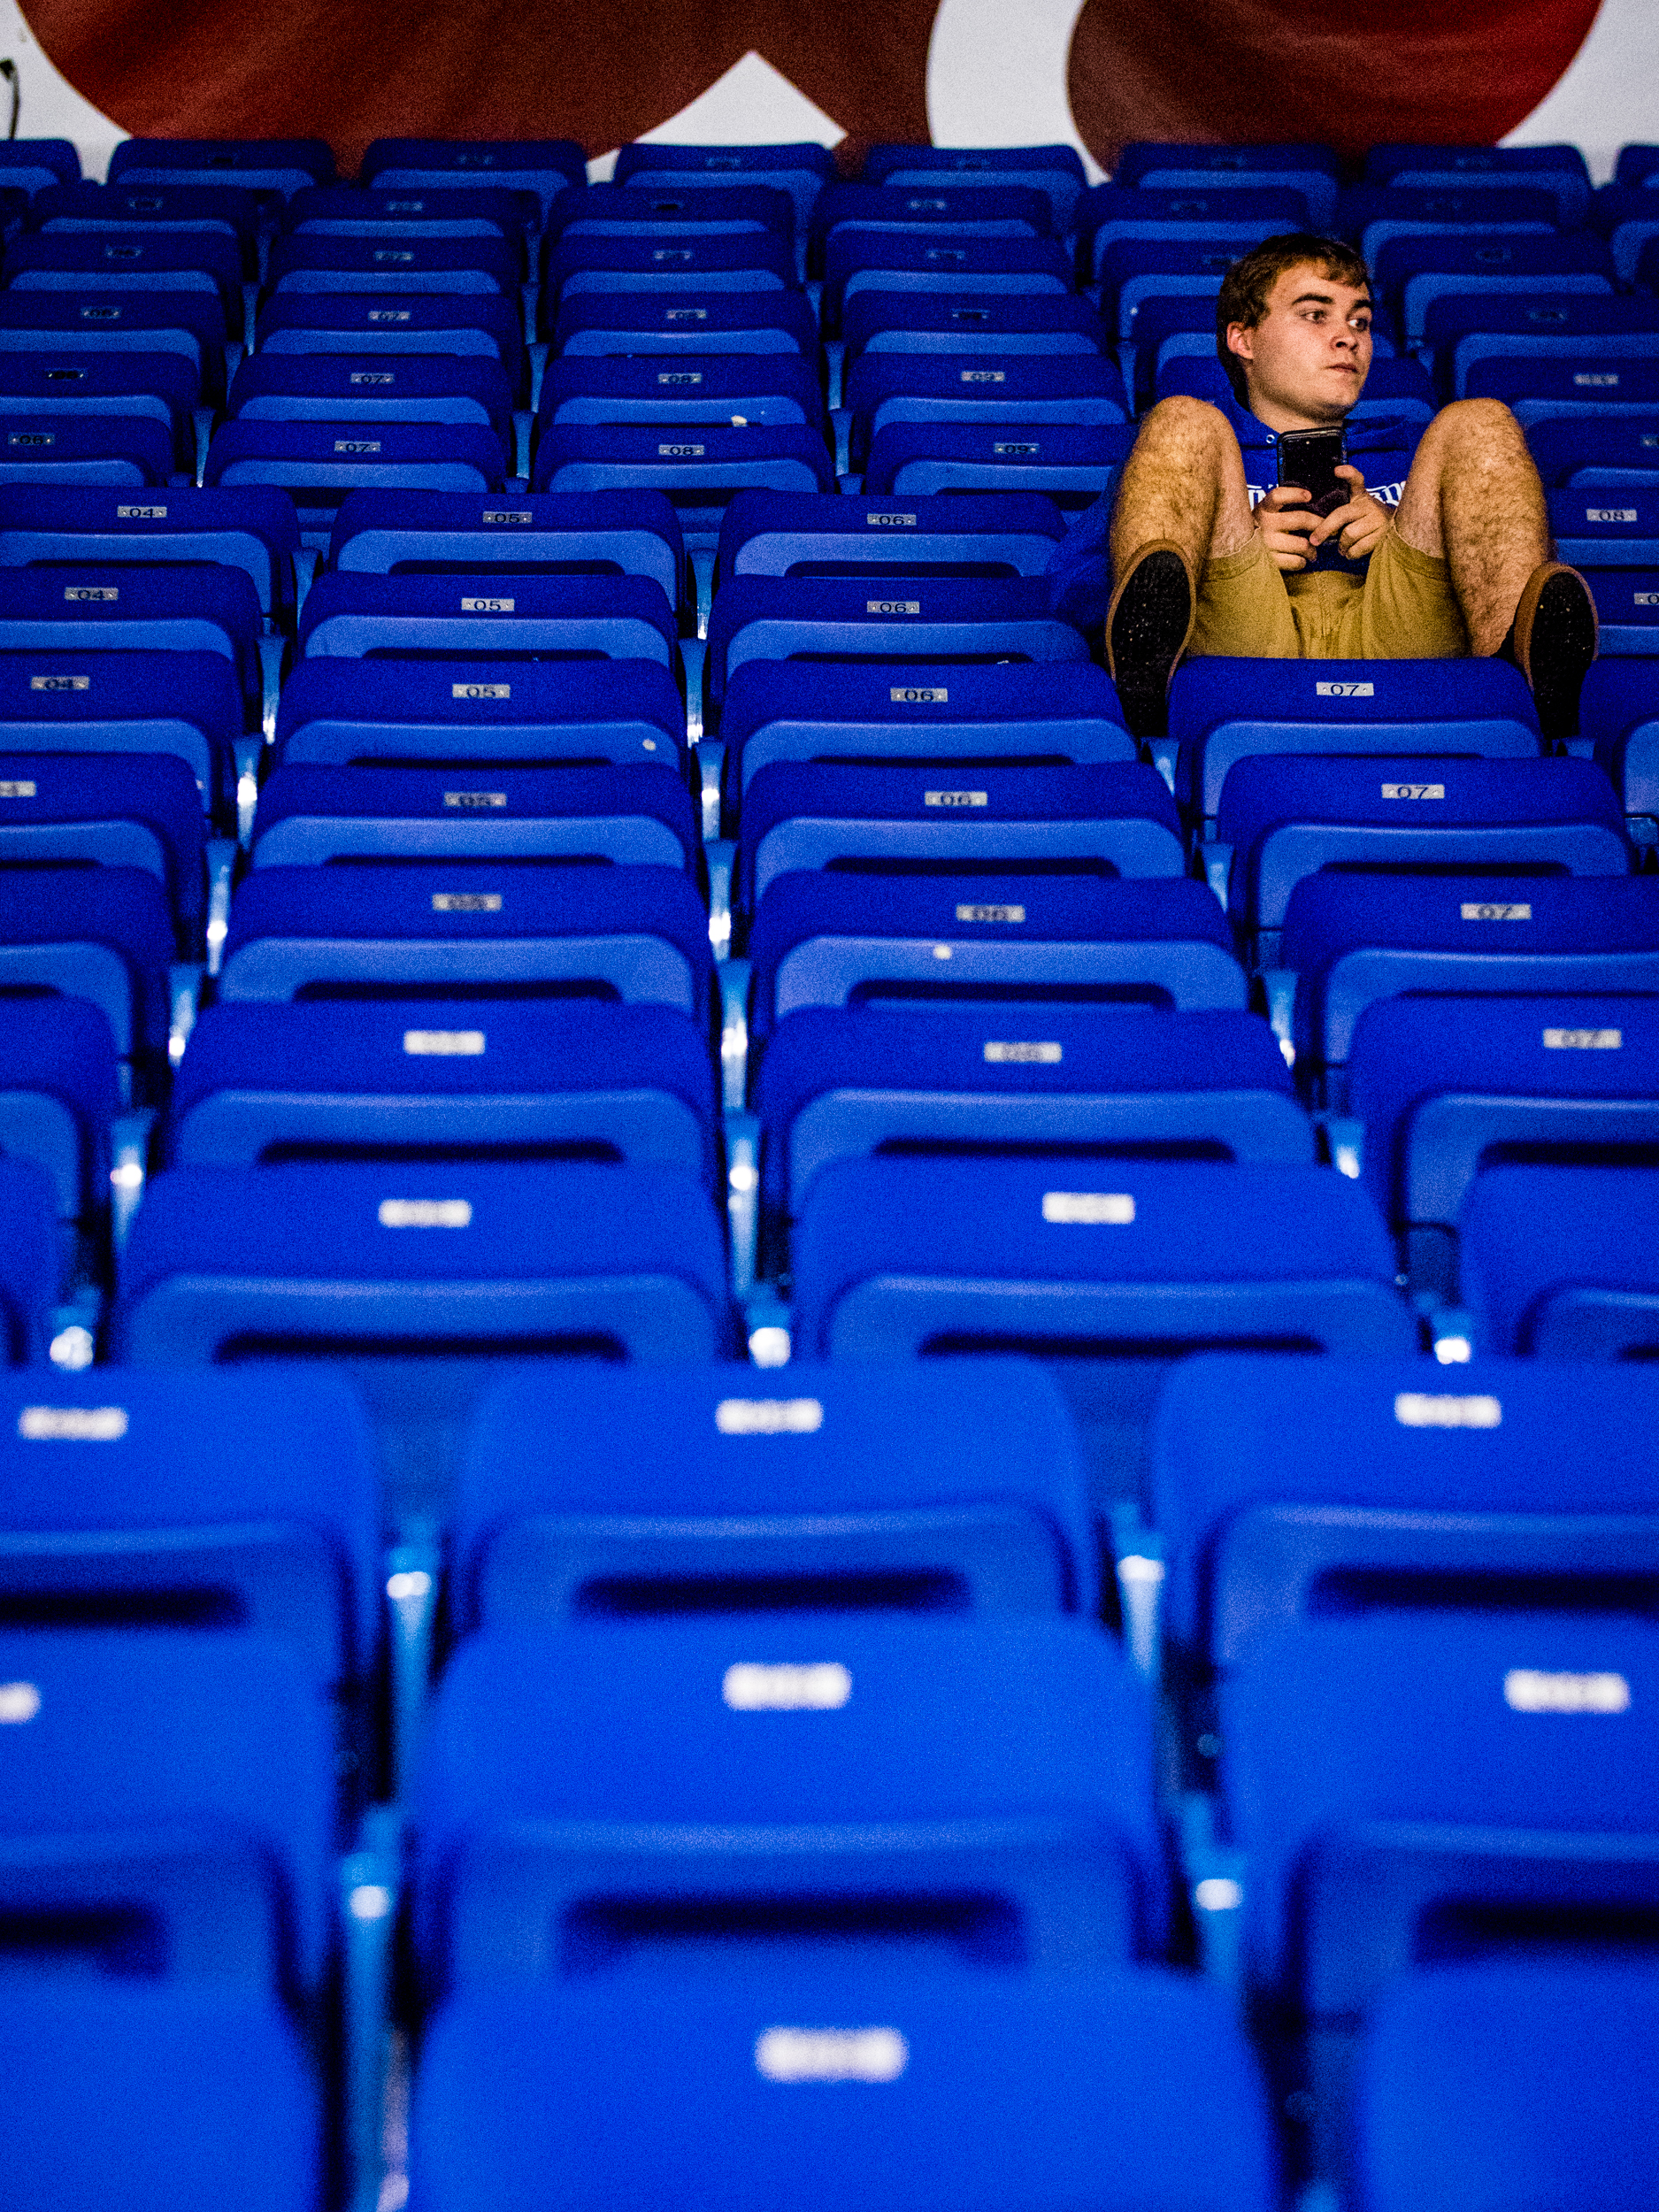 A fan watches on as UBC takes on Lethbridge.